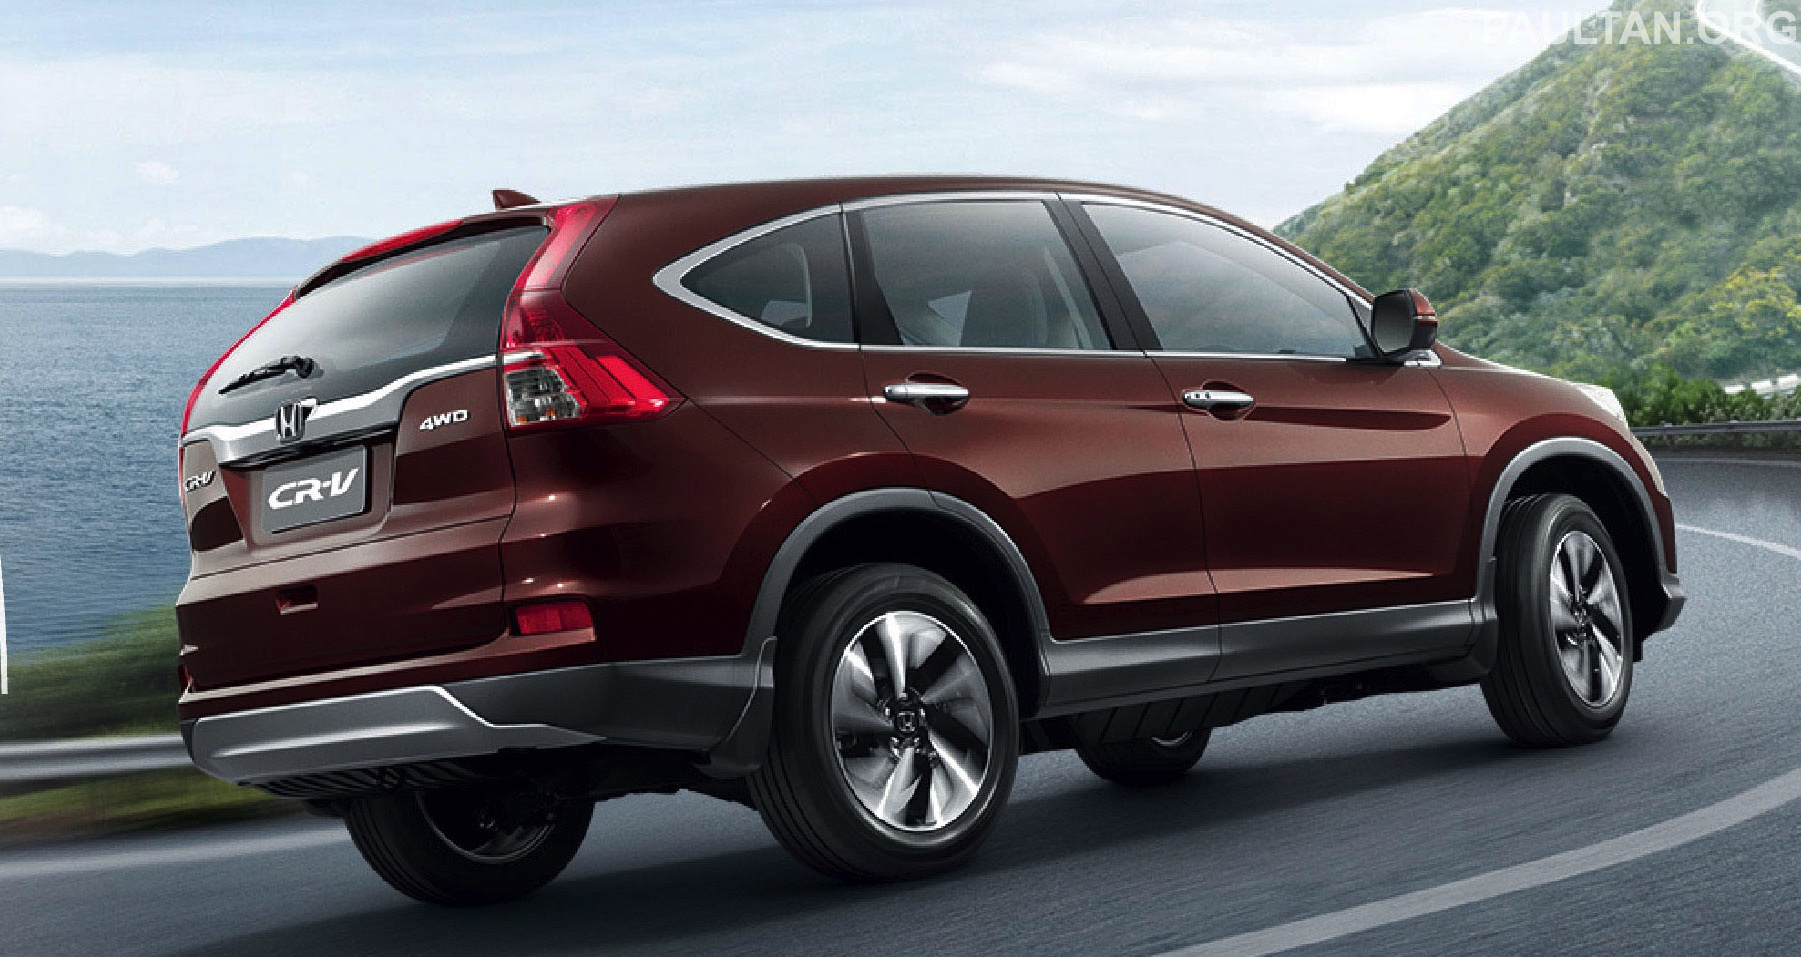 2015 honda cr v facelift asean version unveiled in. Black Bedroom Furniture Sets. Home Design Ideas